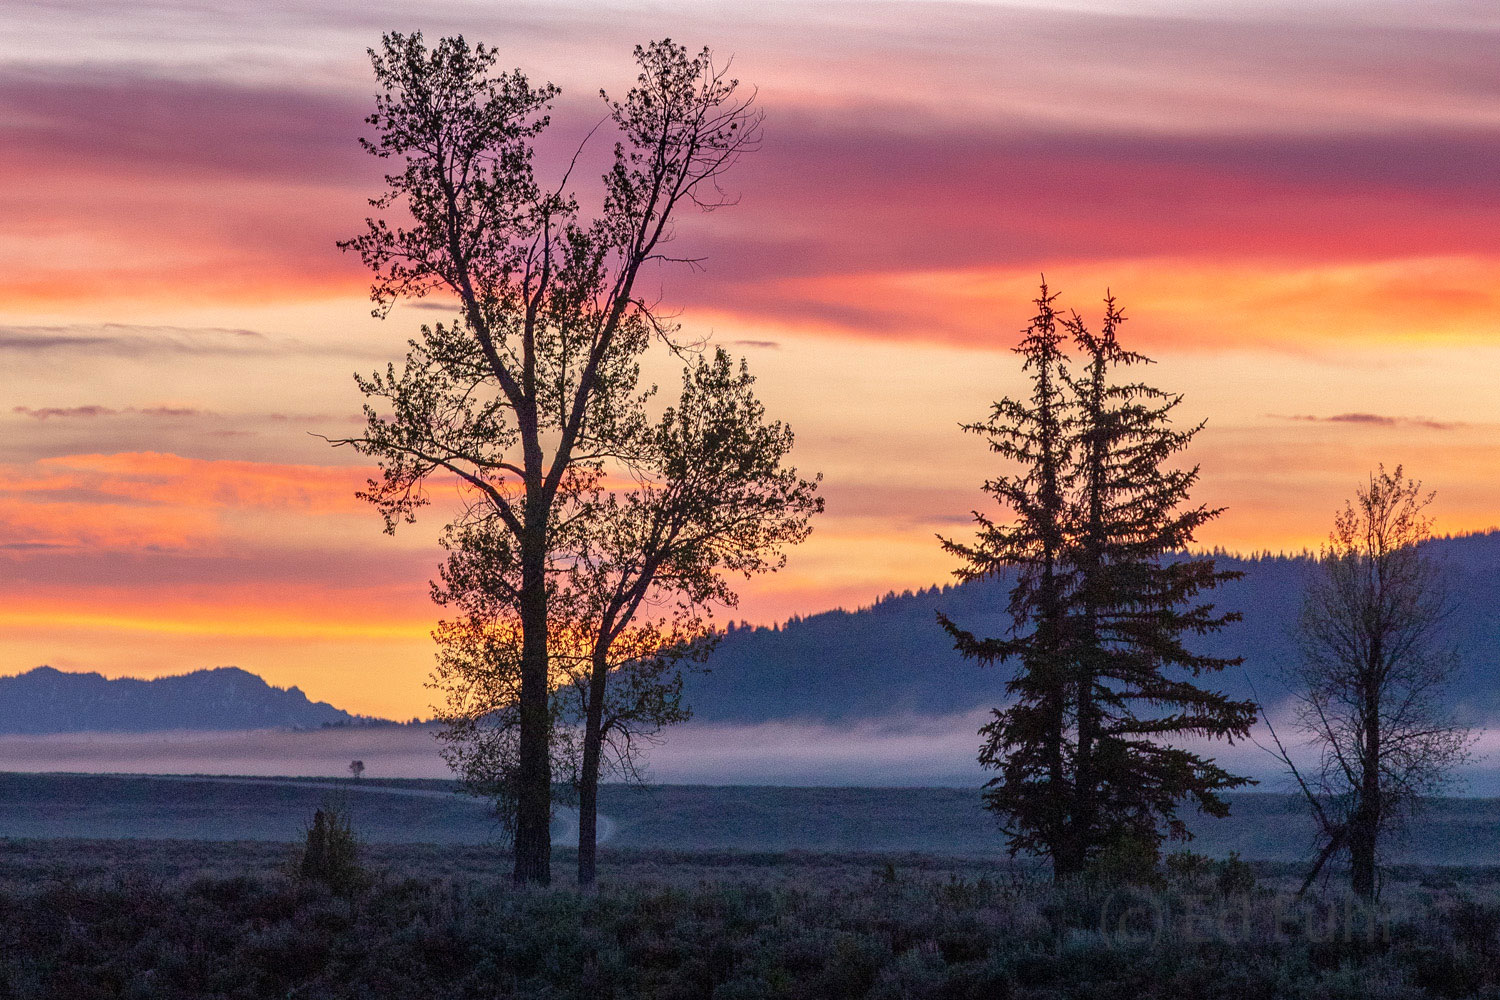 grand teton, springtime, sunrise, blacktail pond, spring photo, image, 2018, Tetons, photo